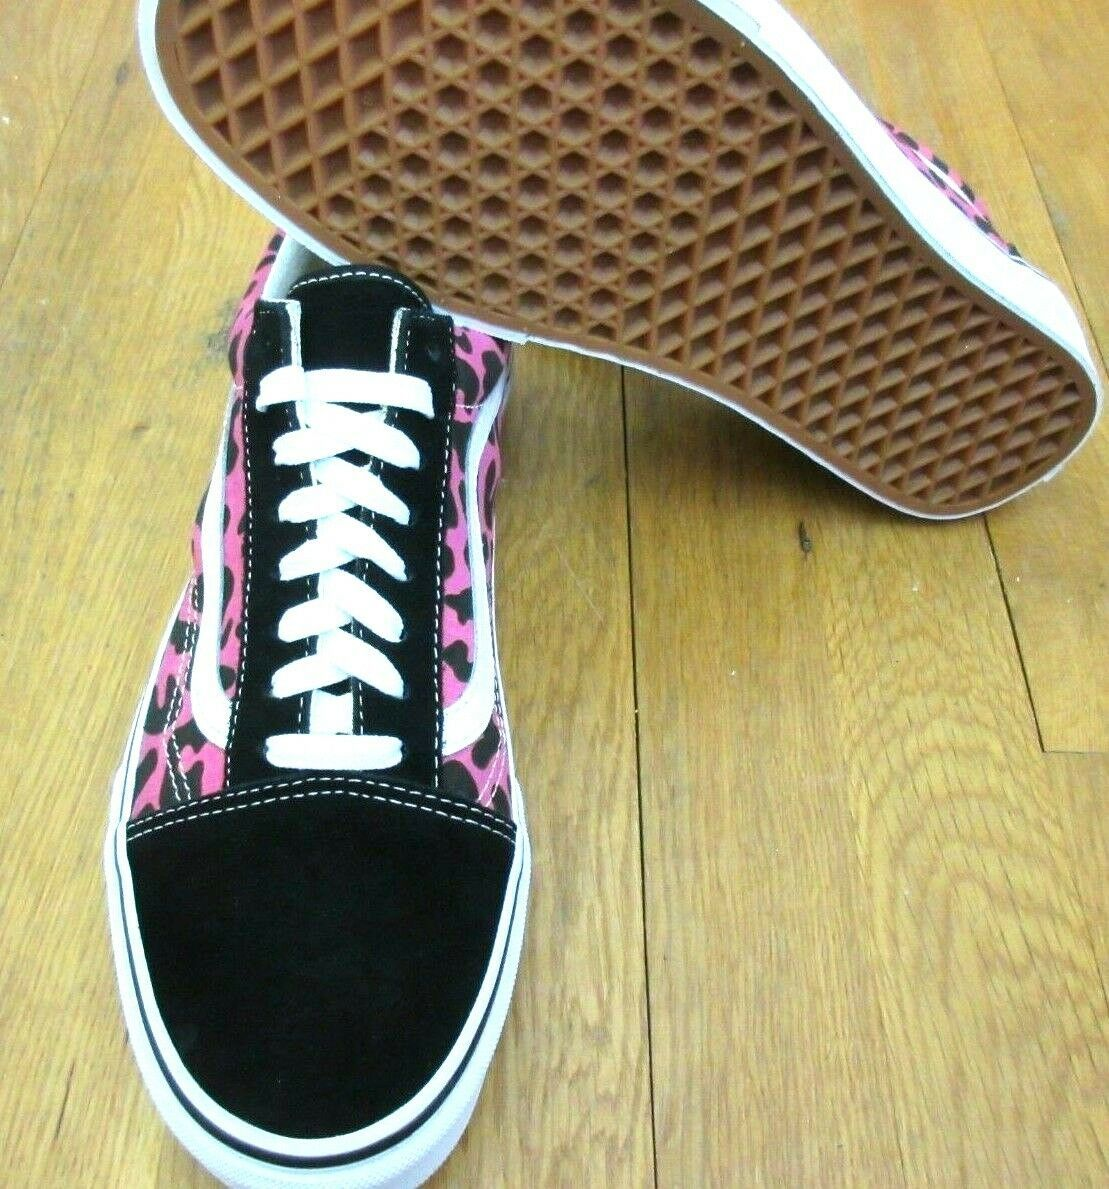 Vans Mens Old Skool Leopard Pink Black Canvas Suede Skate shoes Size 9 NWT